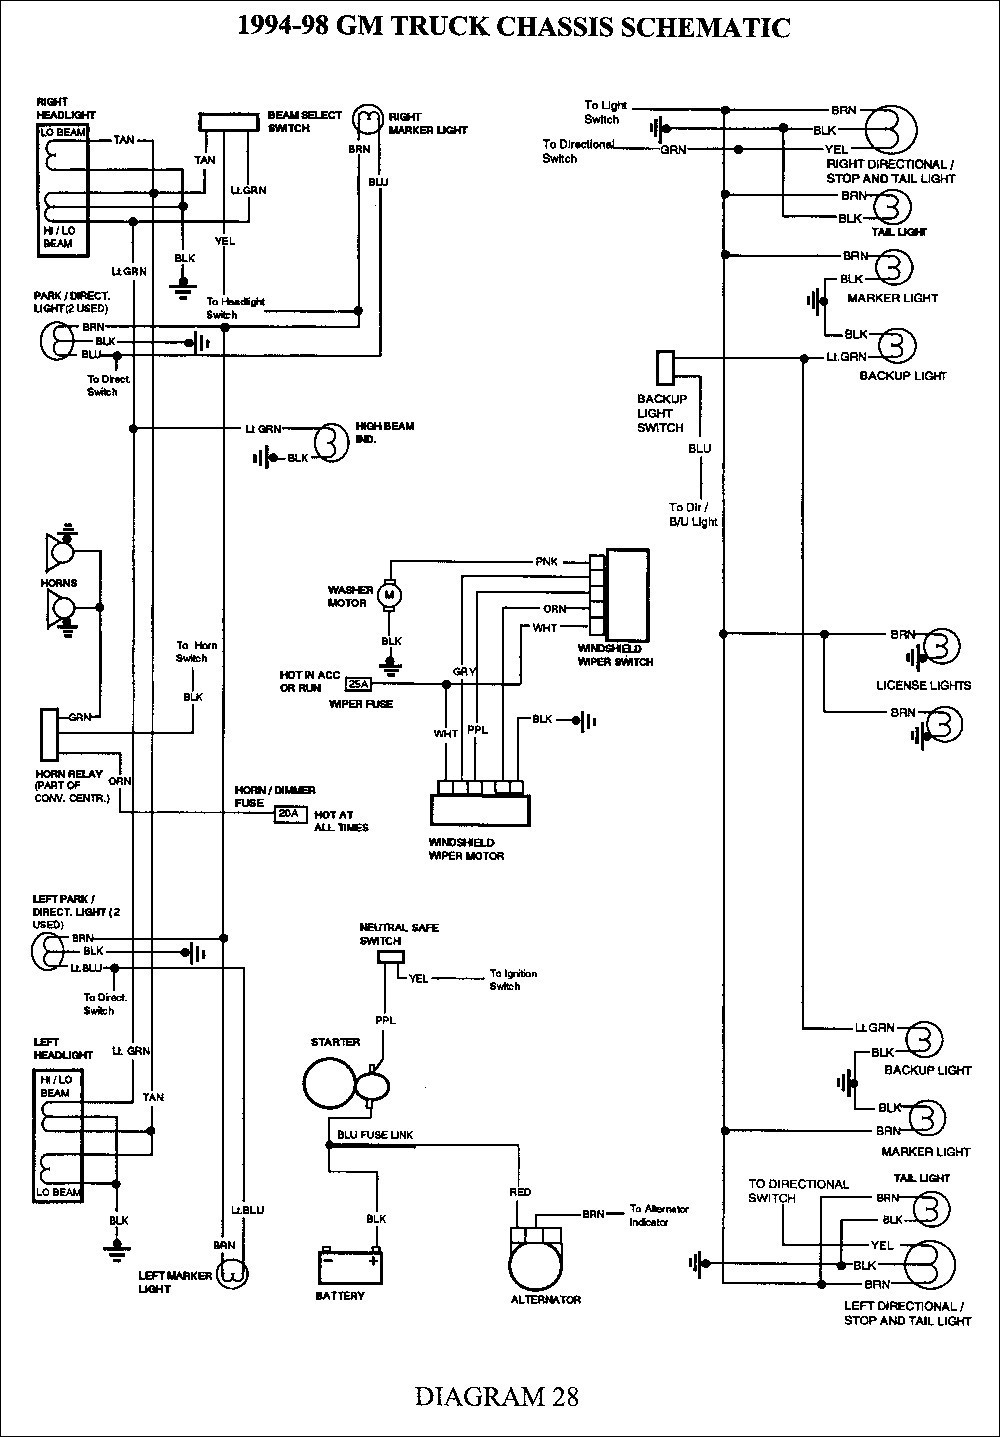 medium resolution of 1984 chevy truck wiring connectors data wiring diagram 1984 chevy truck wiring connectors